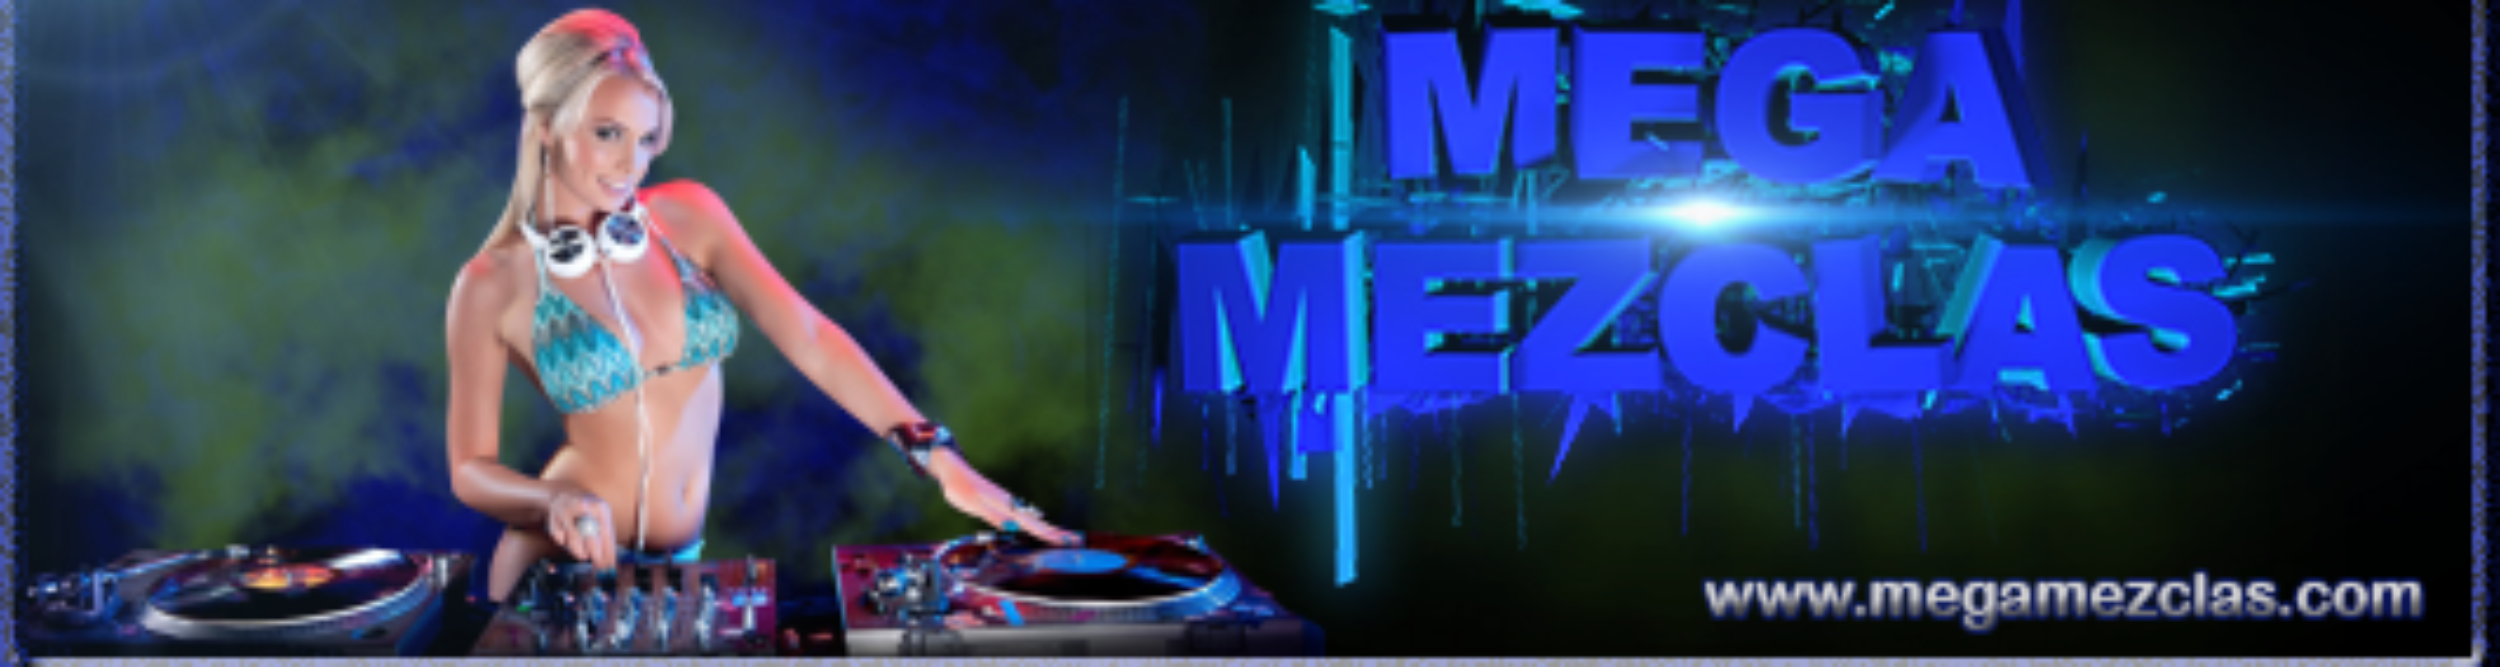 MegaMezclas Radio dj en vivo por Internet new york alex sensation